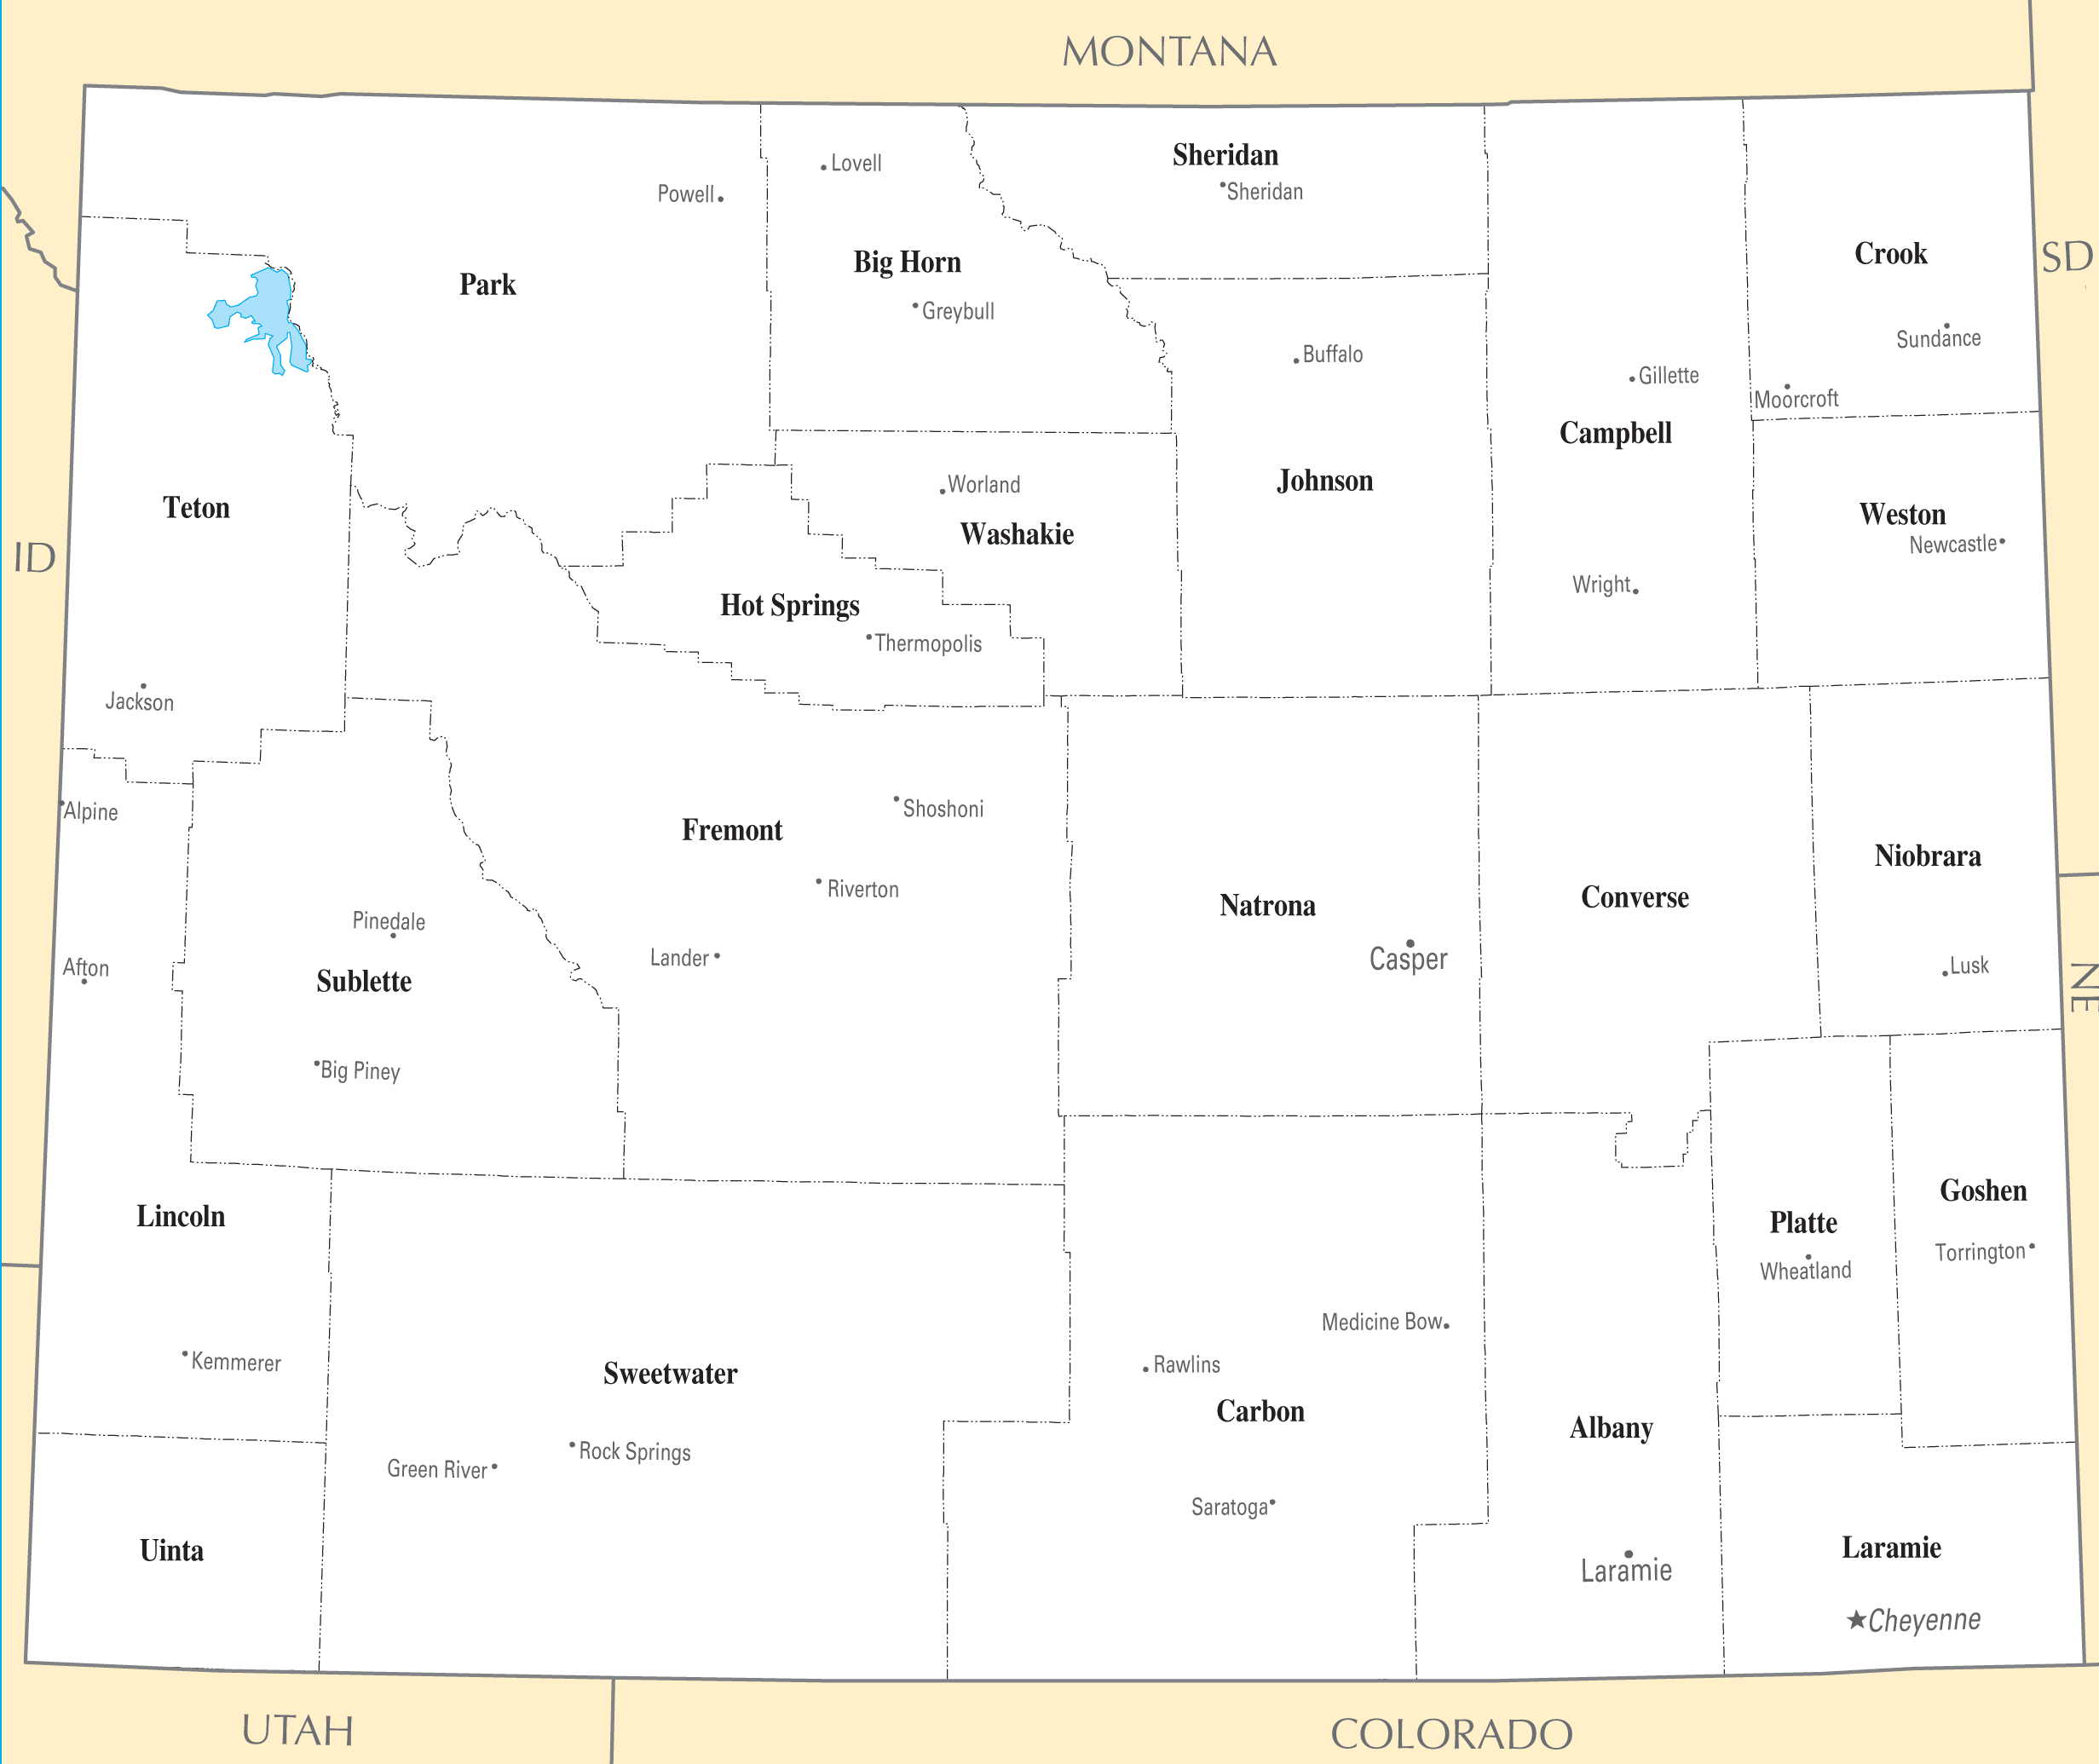 Wyoming Cities And Towns Mapsofnet - Cities in wyoming map